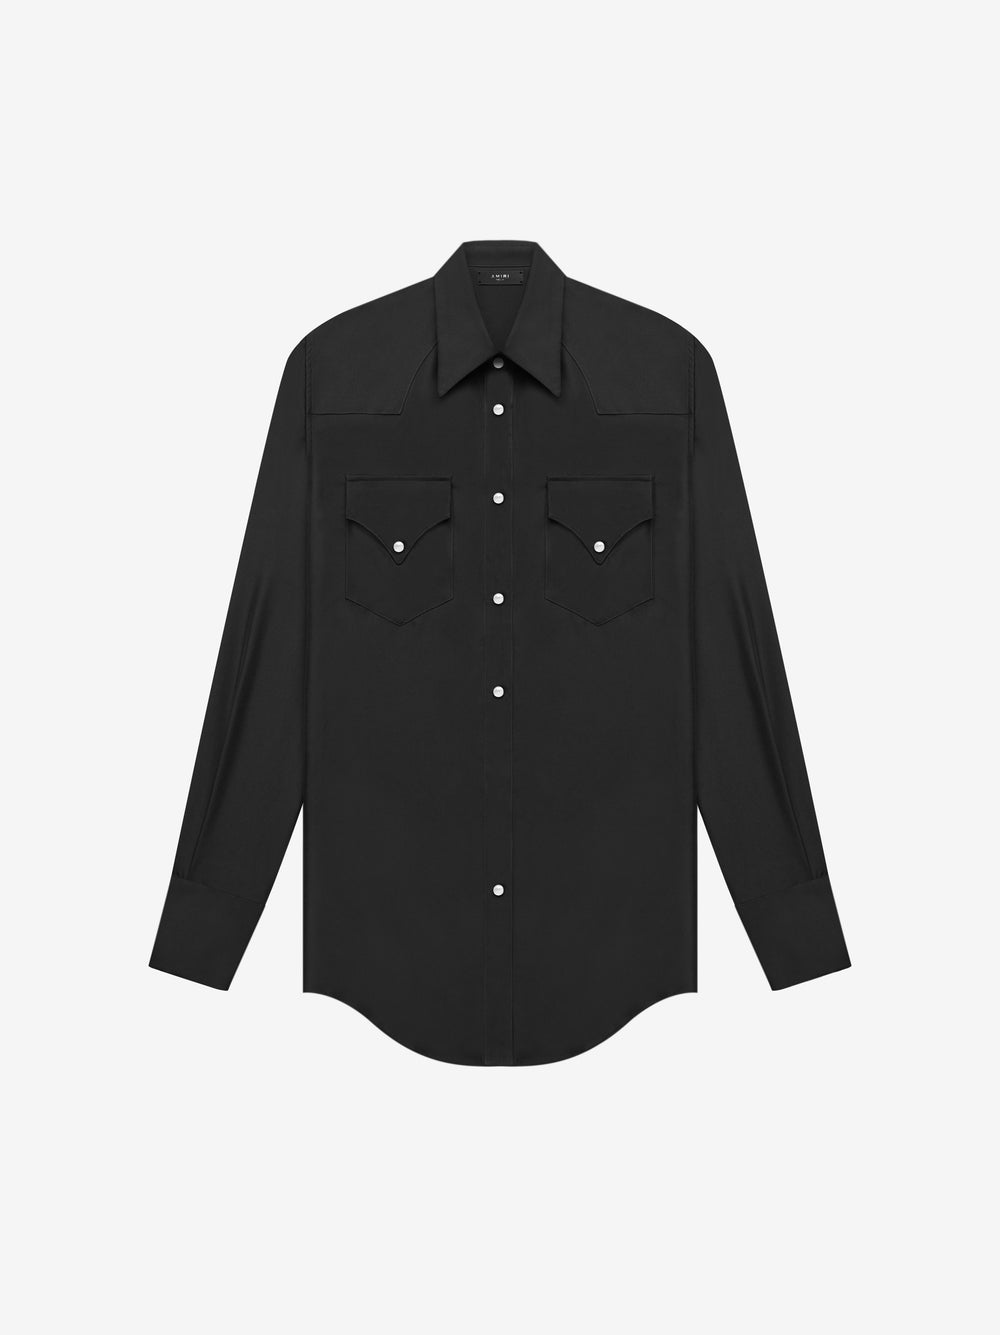 WESTERN SILK SHIRT - BLACK